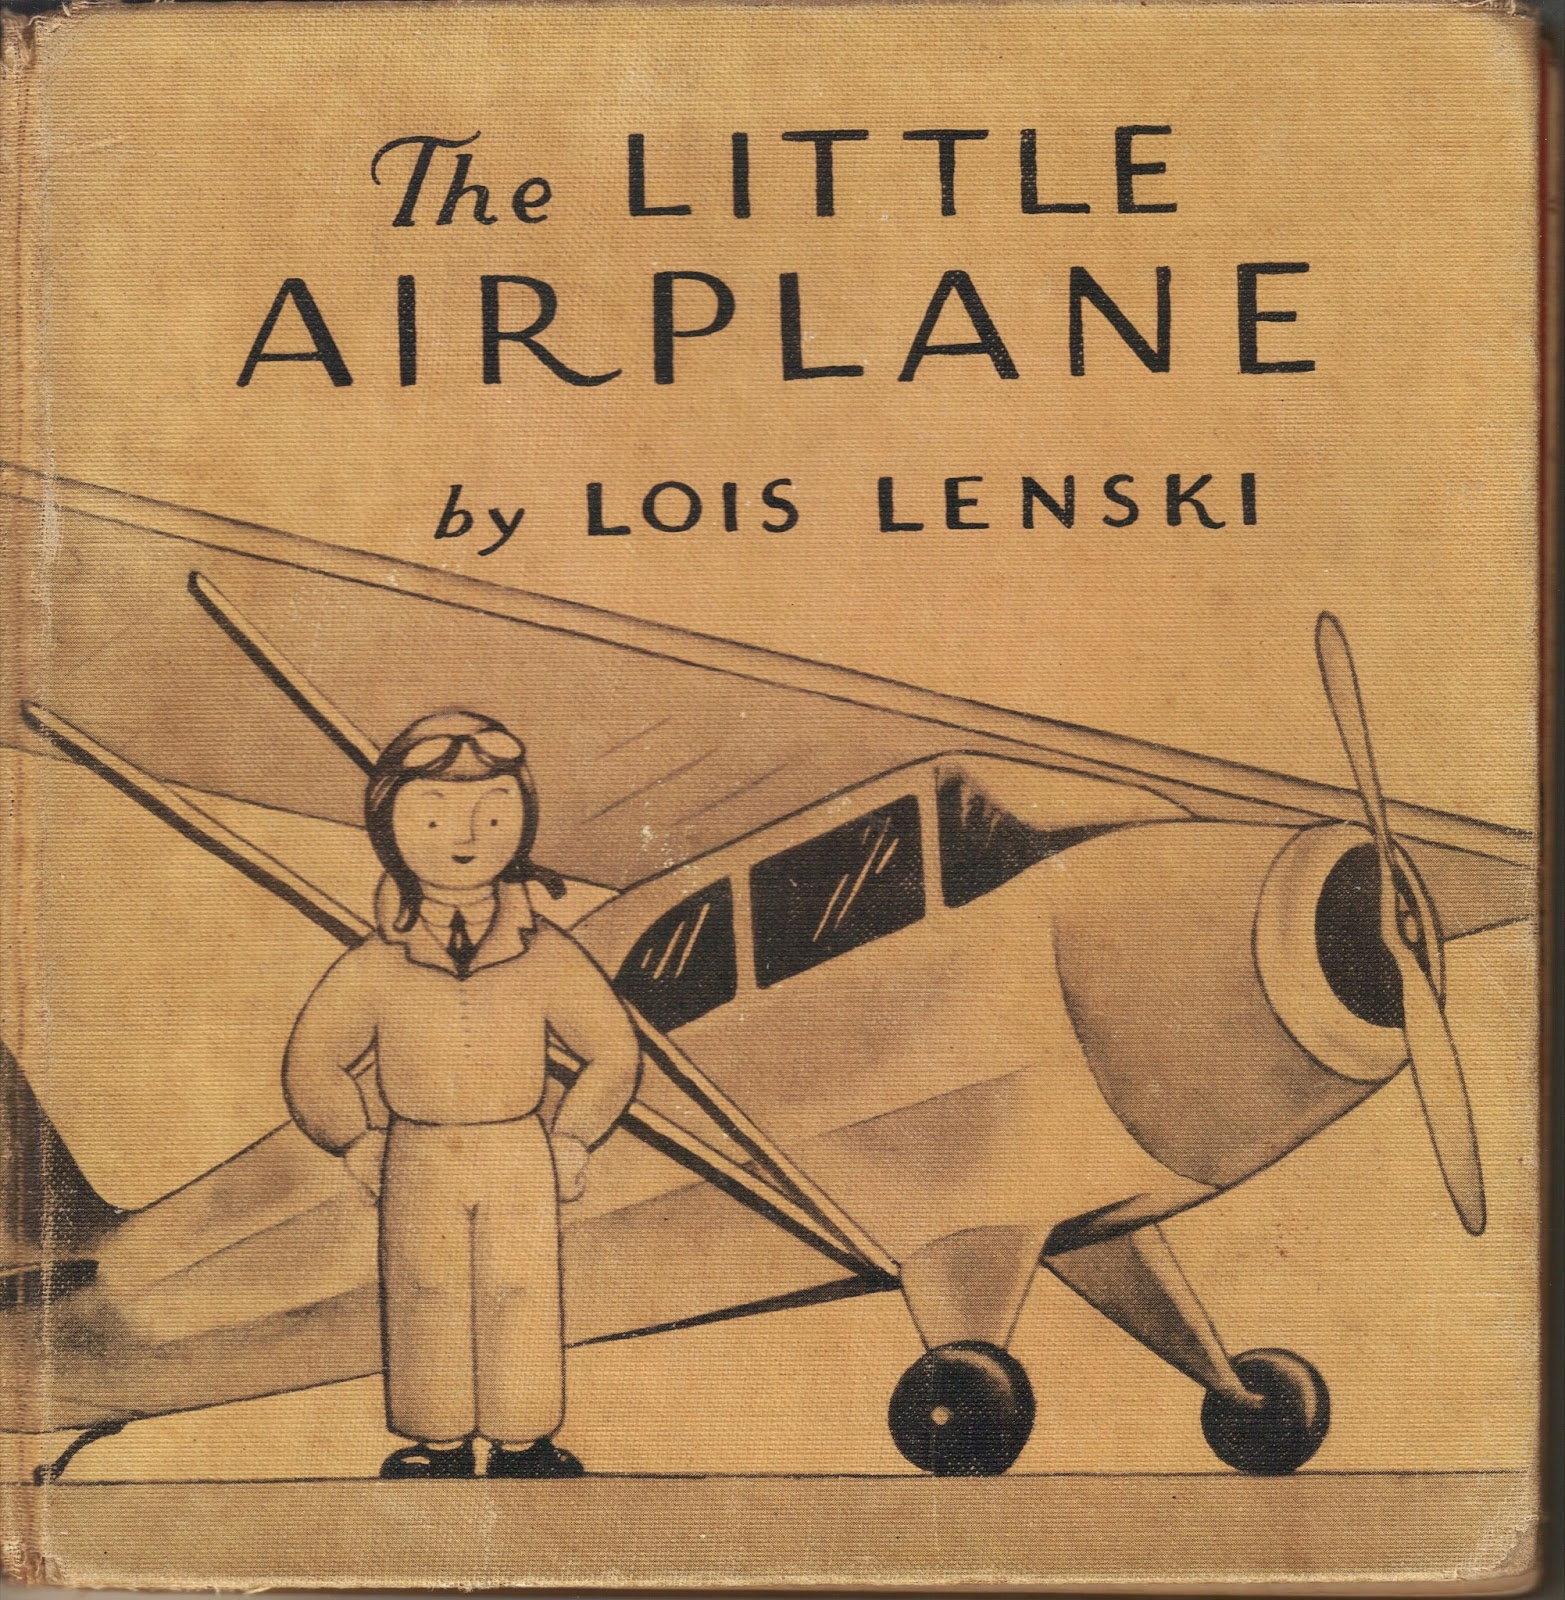 The Little Airplane by Lois Lenski. New York: Oxford University Press, (1938)